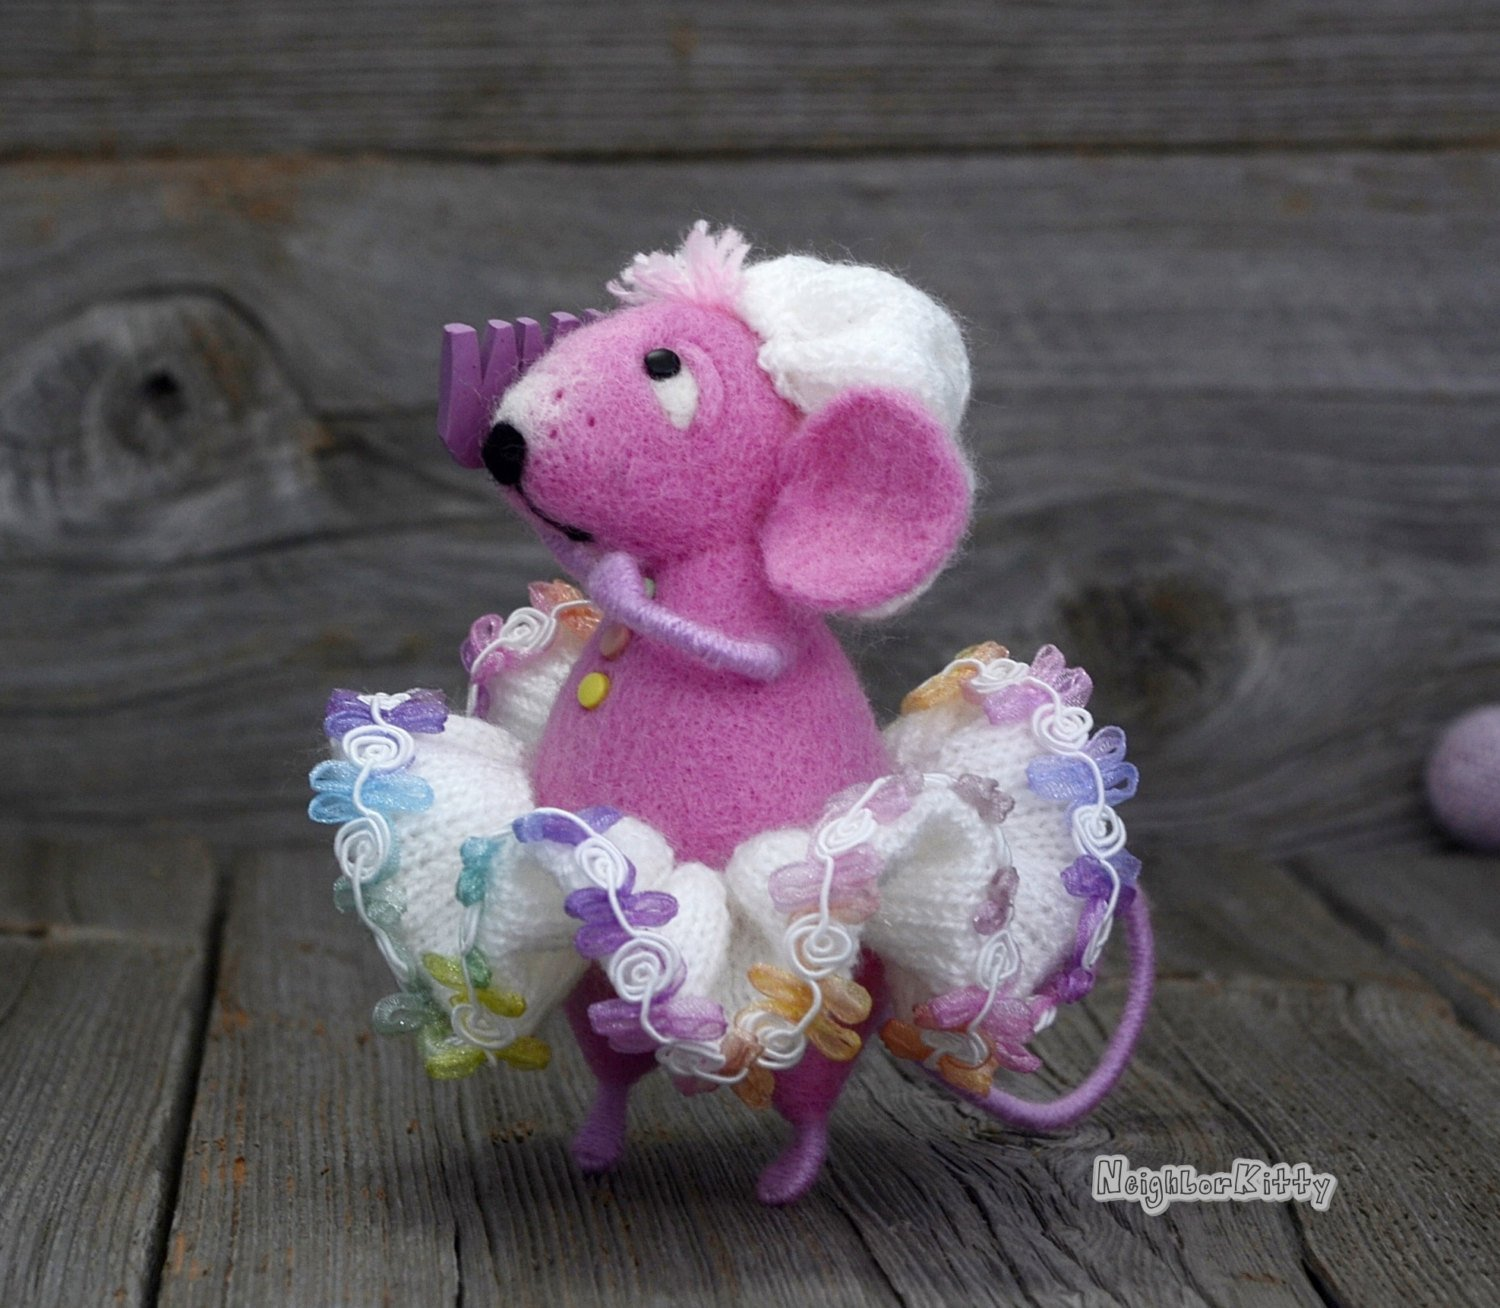 Pink Mouse with comb, Soft doll, Needle felting, Knitted animal, Waldorf, Figurine, Home Nursery decoration, Gift, NeighborKitty, Wool rat